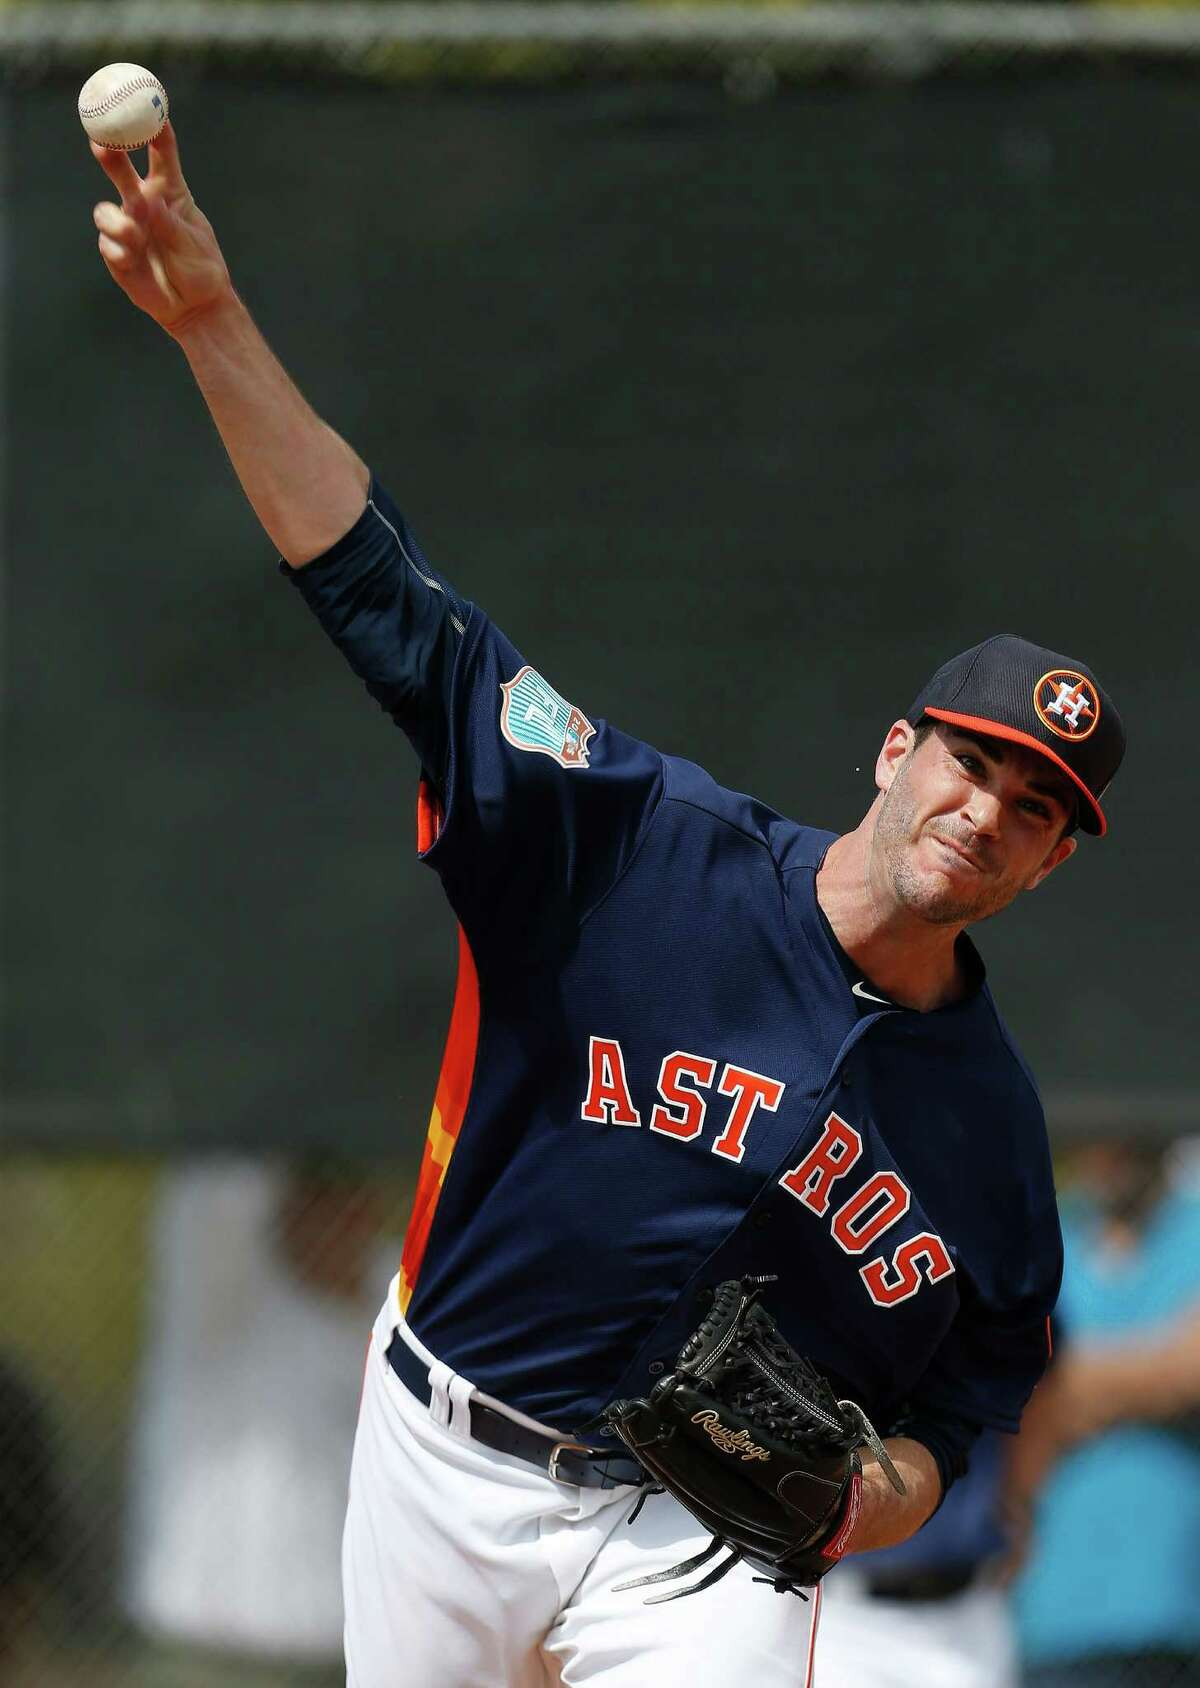 Houston Astros pitcher James Hoyt pitches during the first workout for Houston Astros pitchers and catchers for spring training in Kissimmee, Florida, Friday, Feb. 19, 2016.